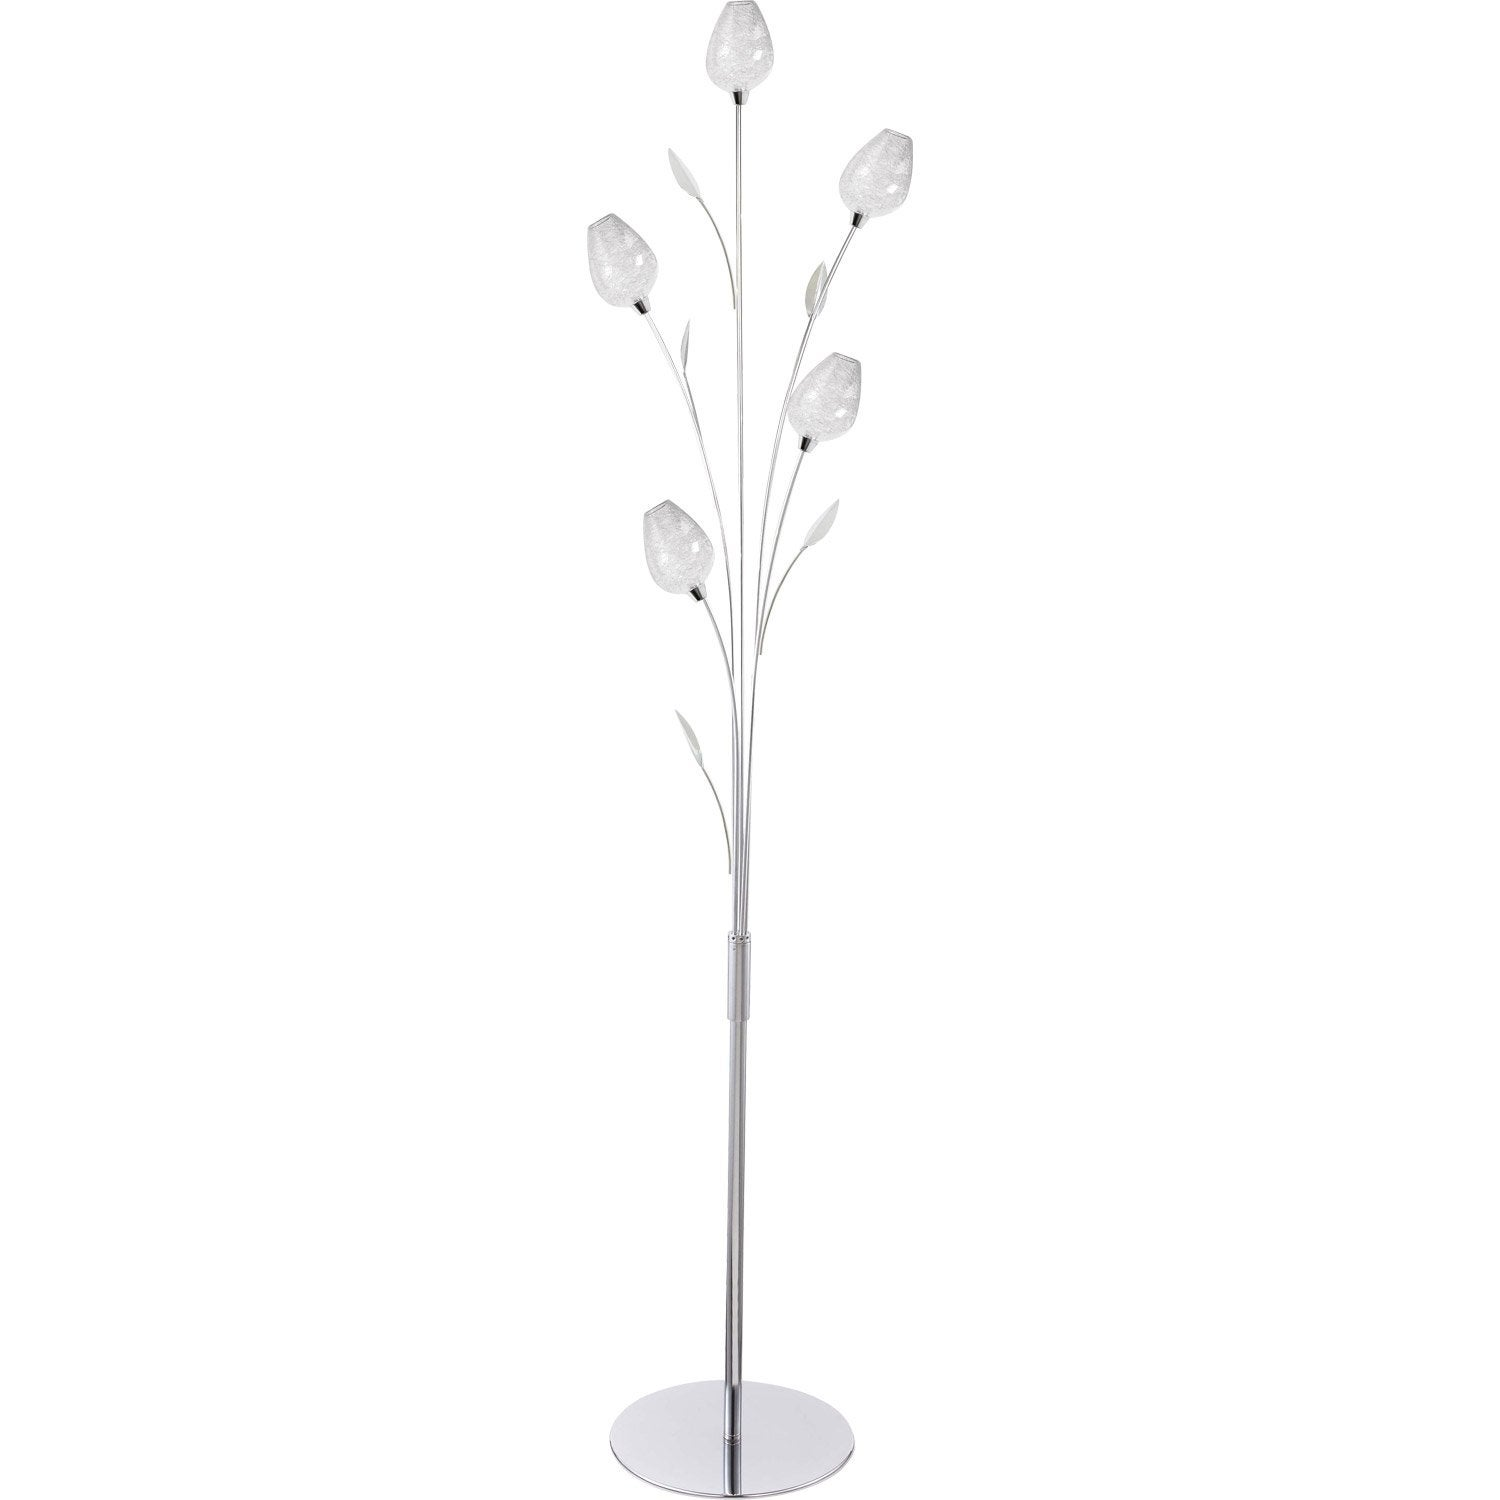 Lampadaire floriane 153 cm transparent 28 w leroy merlin for Luminaire exterieur design leroy merlin